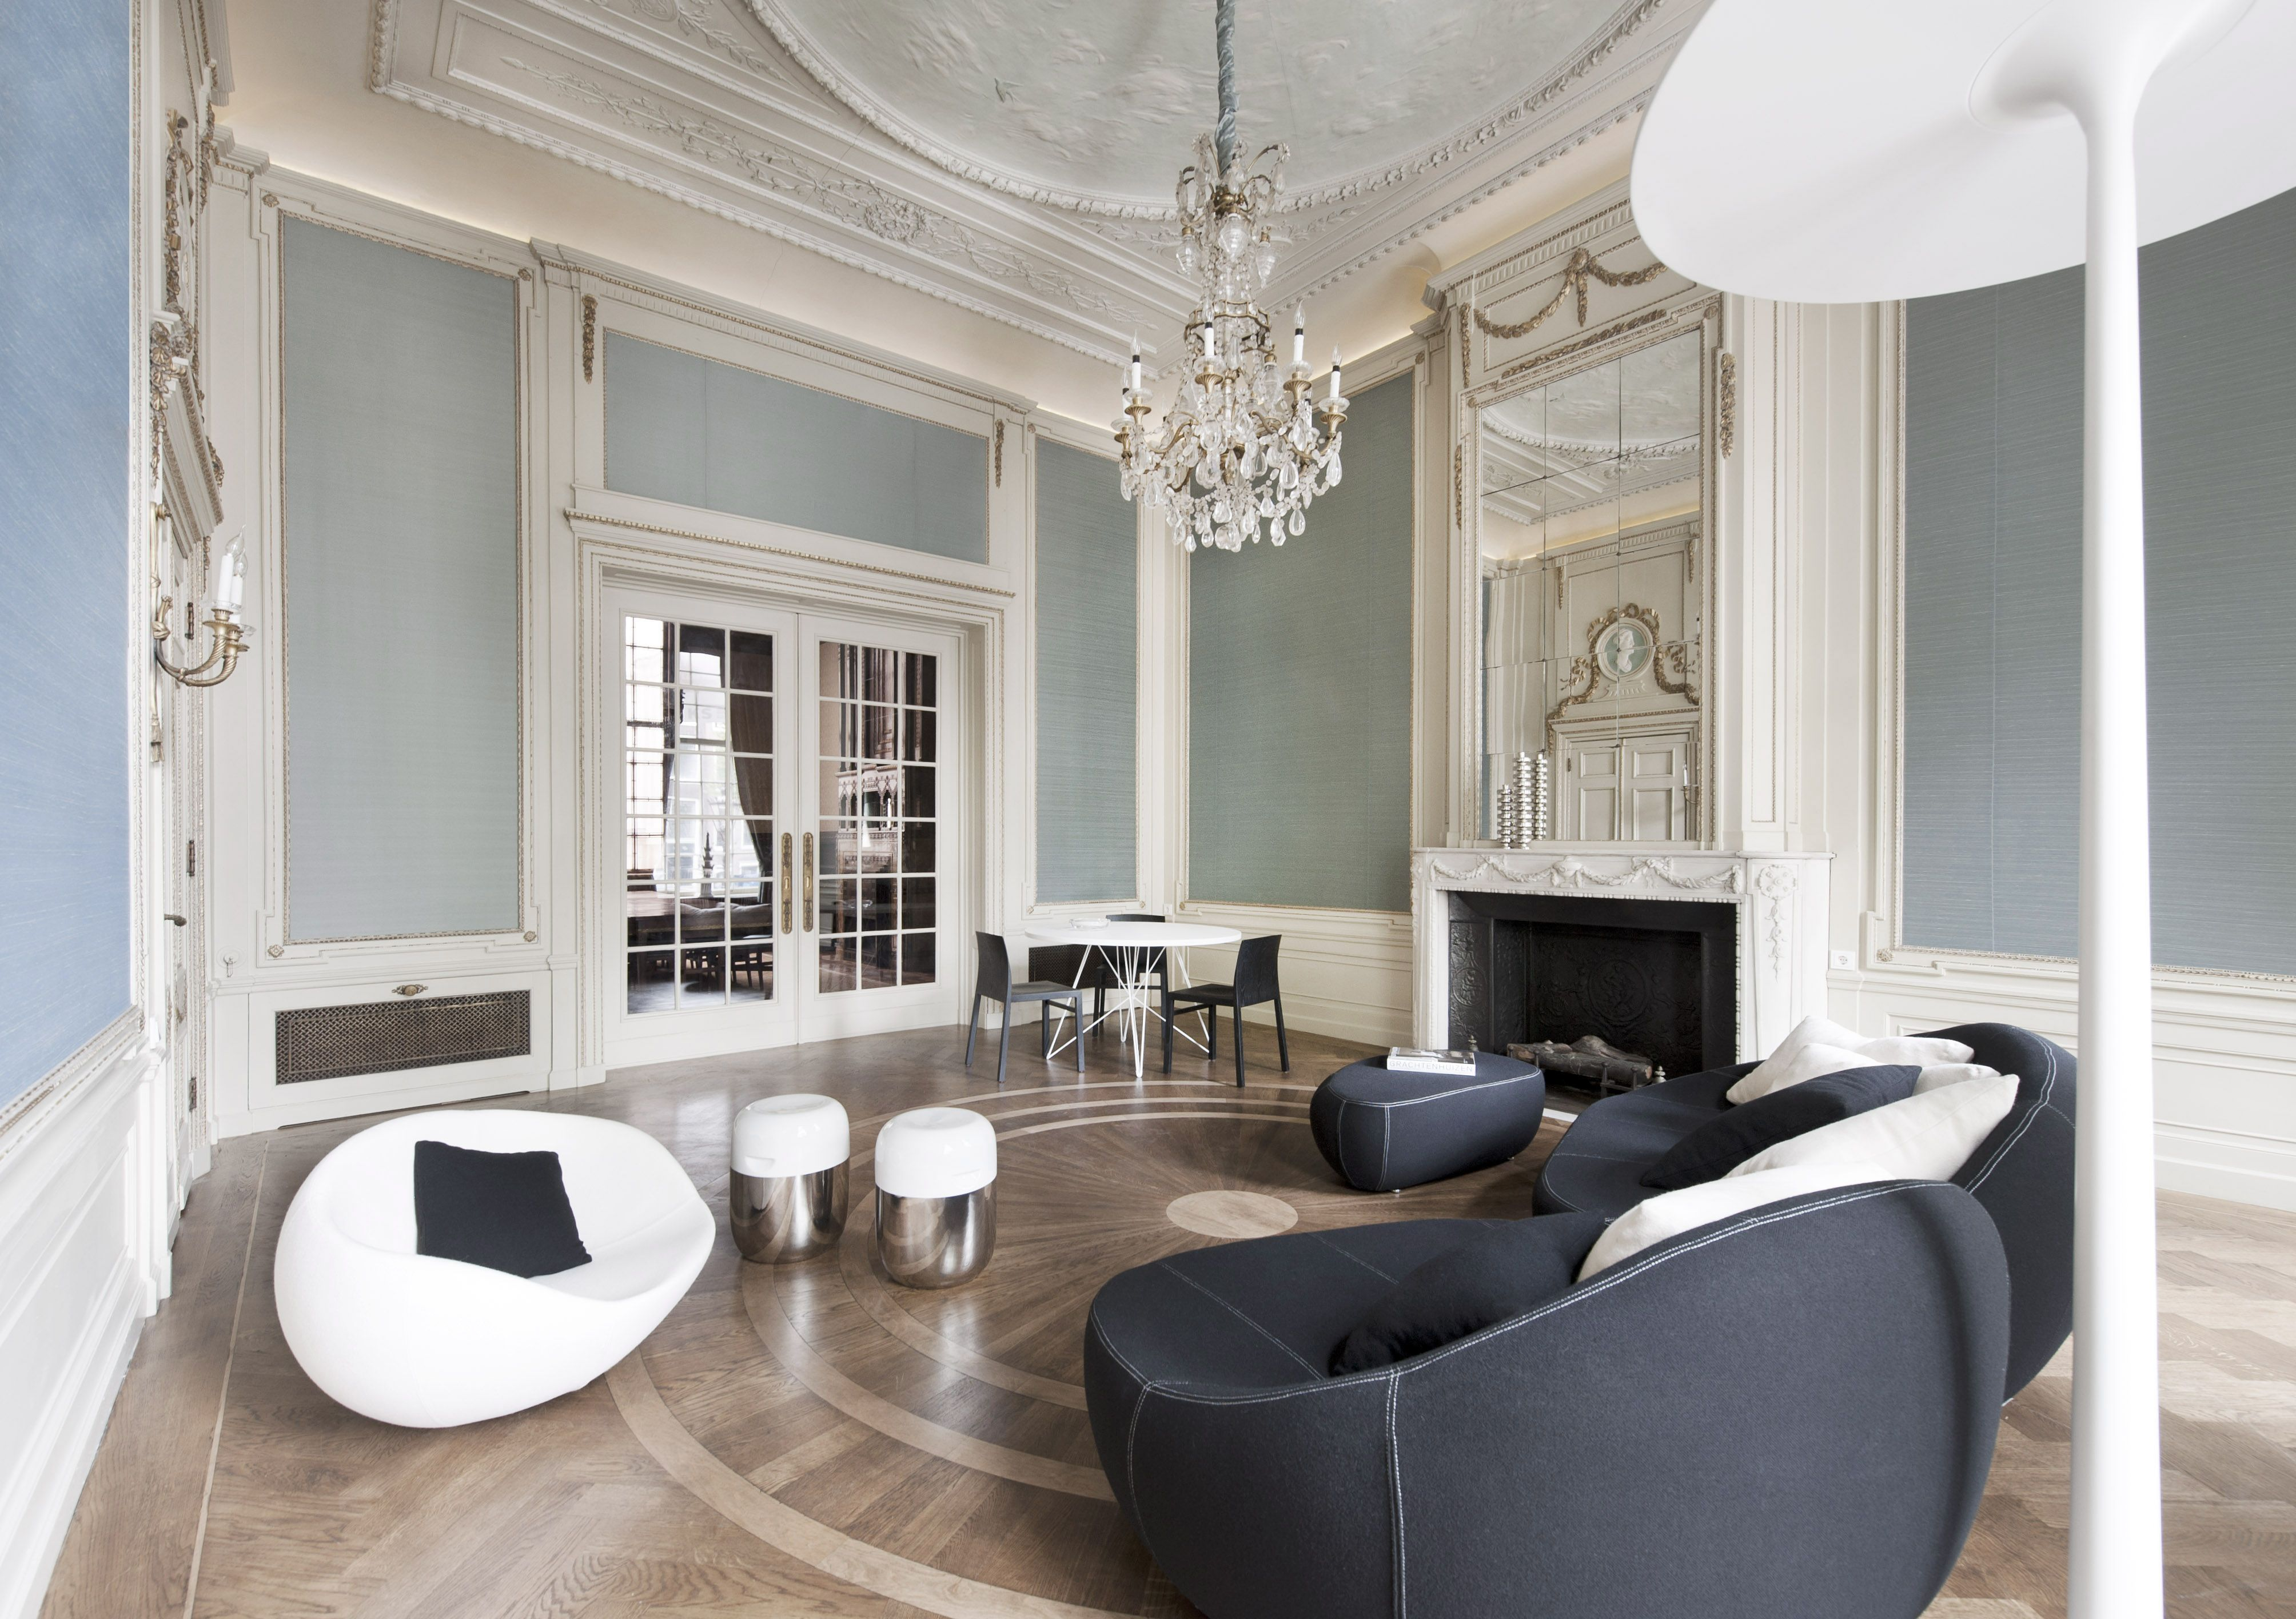 Interior Design Monumental Reception Rooms For REPLAY Office And Showrooms Herengracht Amsterdam Furnishing By